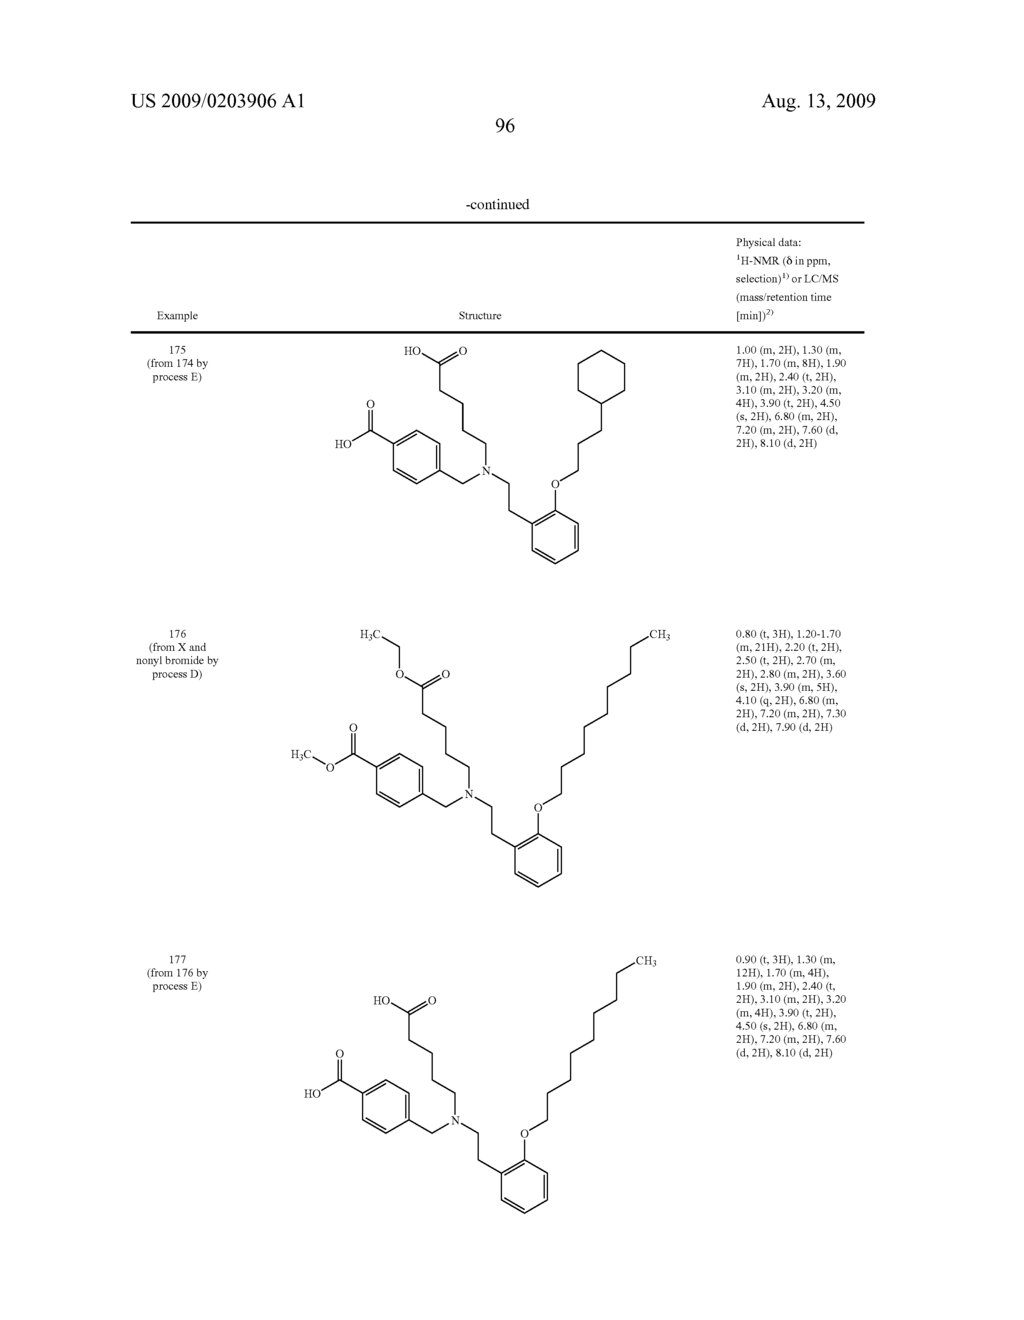 NOVEL AMINODICARBOXYLIC ACID DERIVATIVES HAVING PHARMACEUTICAL PROPERTIES - diagram, schematic, and image 97